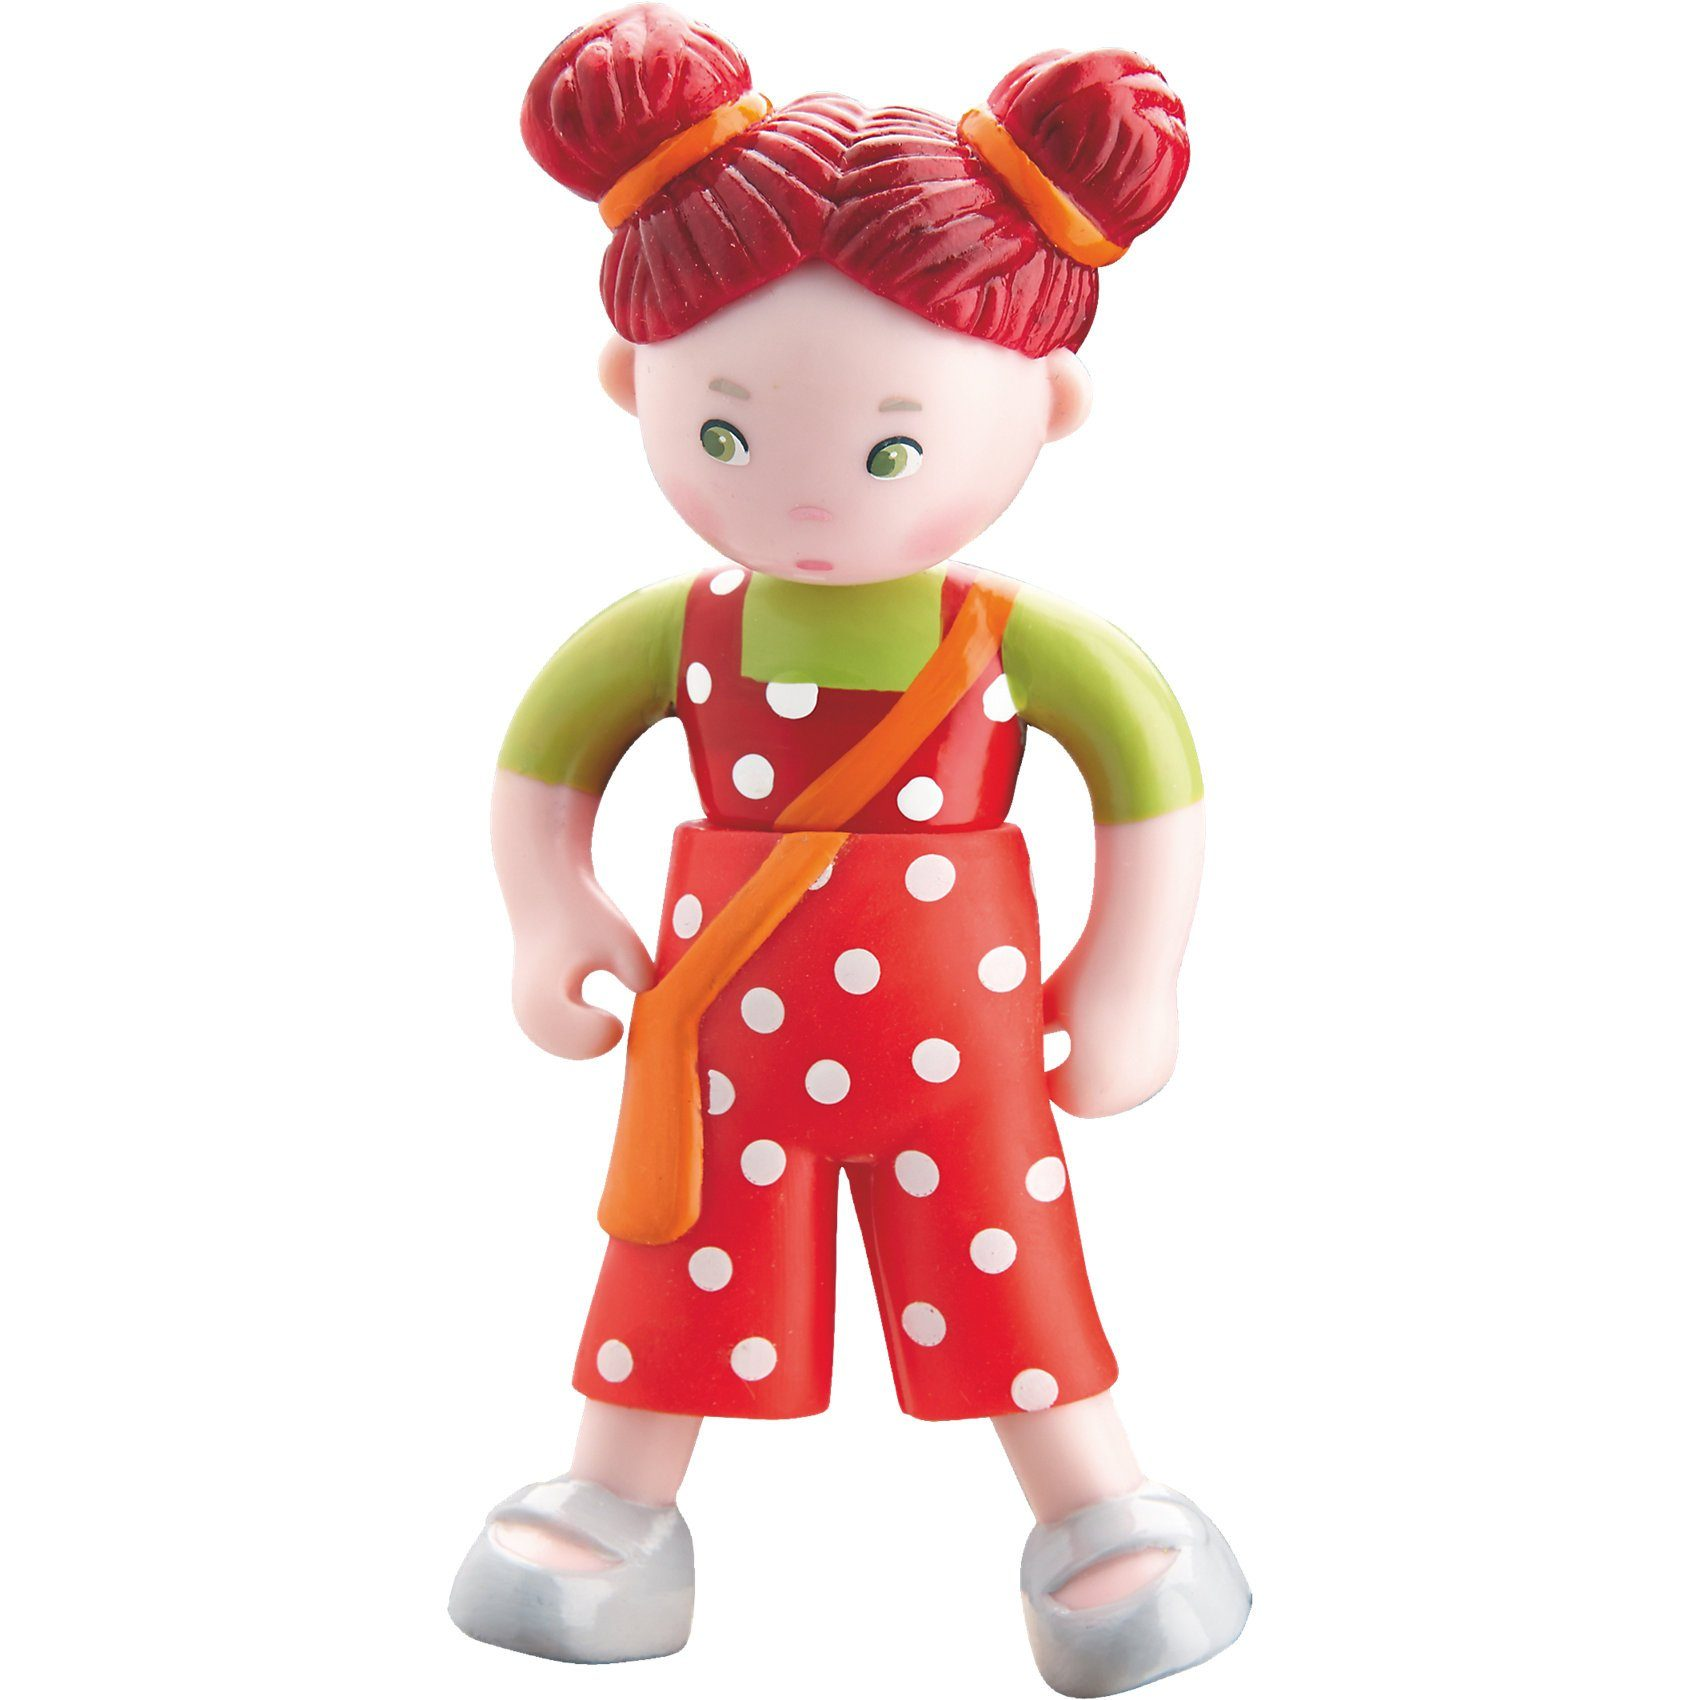 Haba 300514 Little Friends Puppe Felicitas 10cm